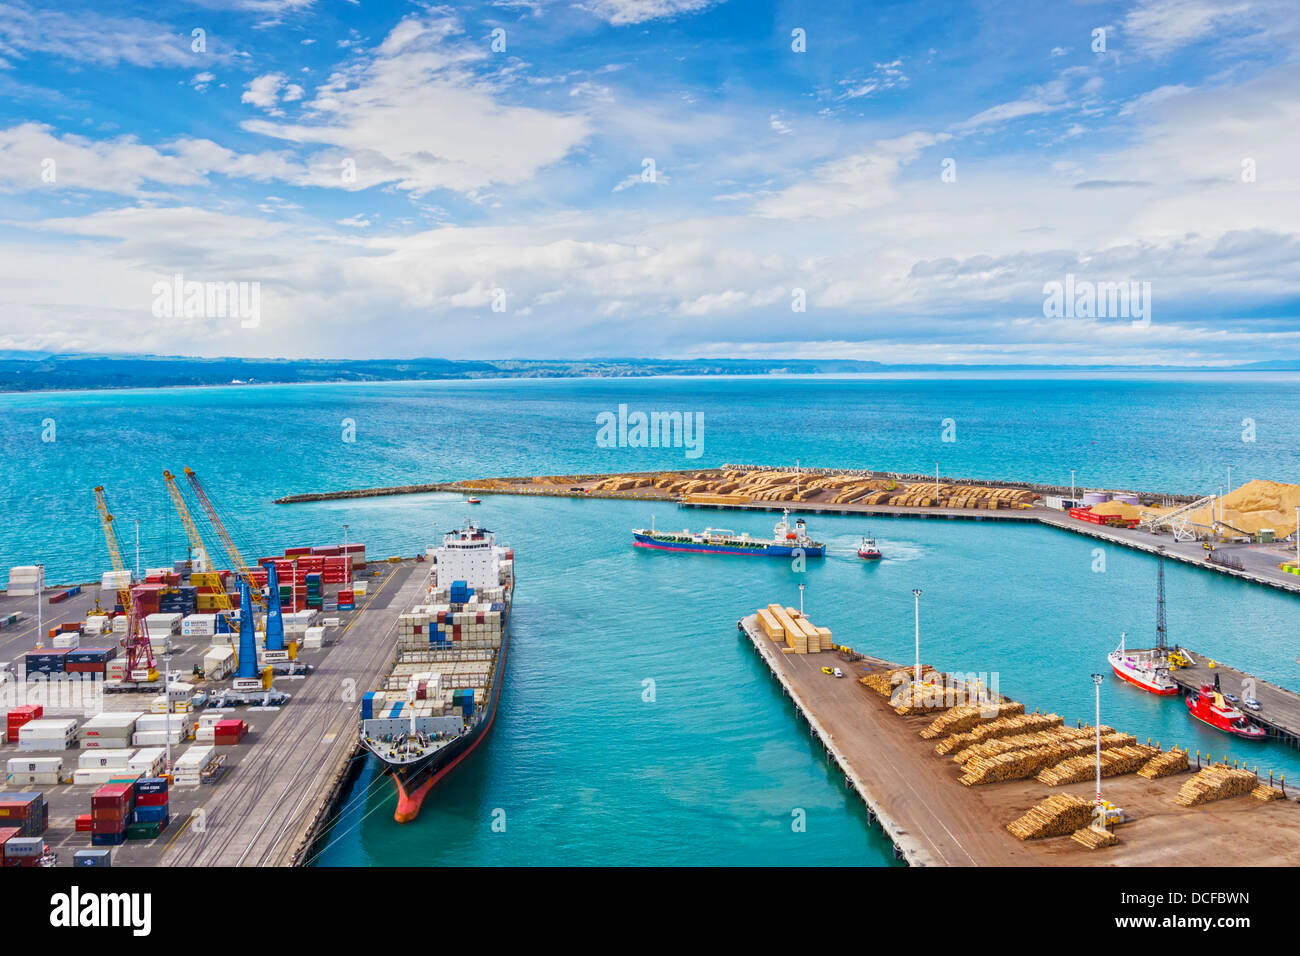 Tanker ship Golden Wave leaving Napier Port, Hawkes Bay, New Zealand. The container ship is the NYK Lyttelton. - Stock Image